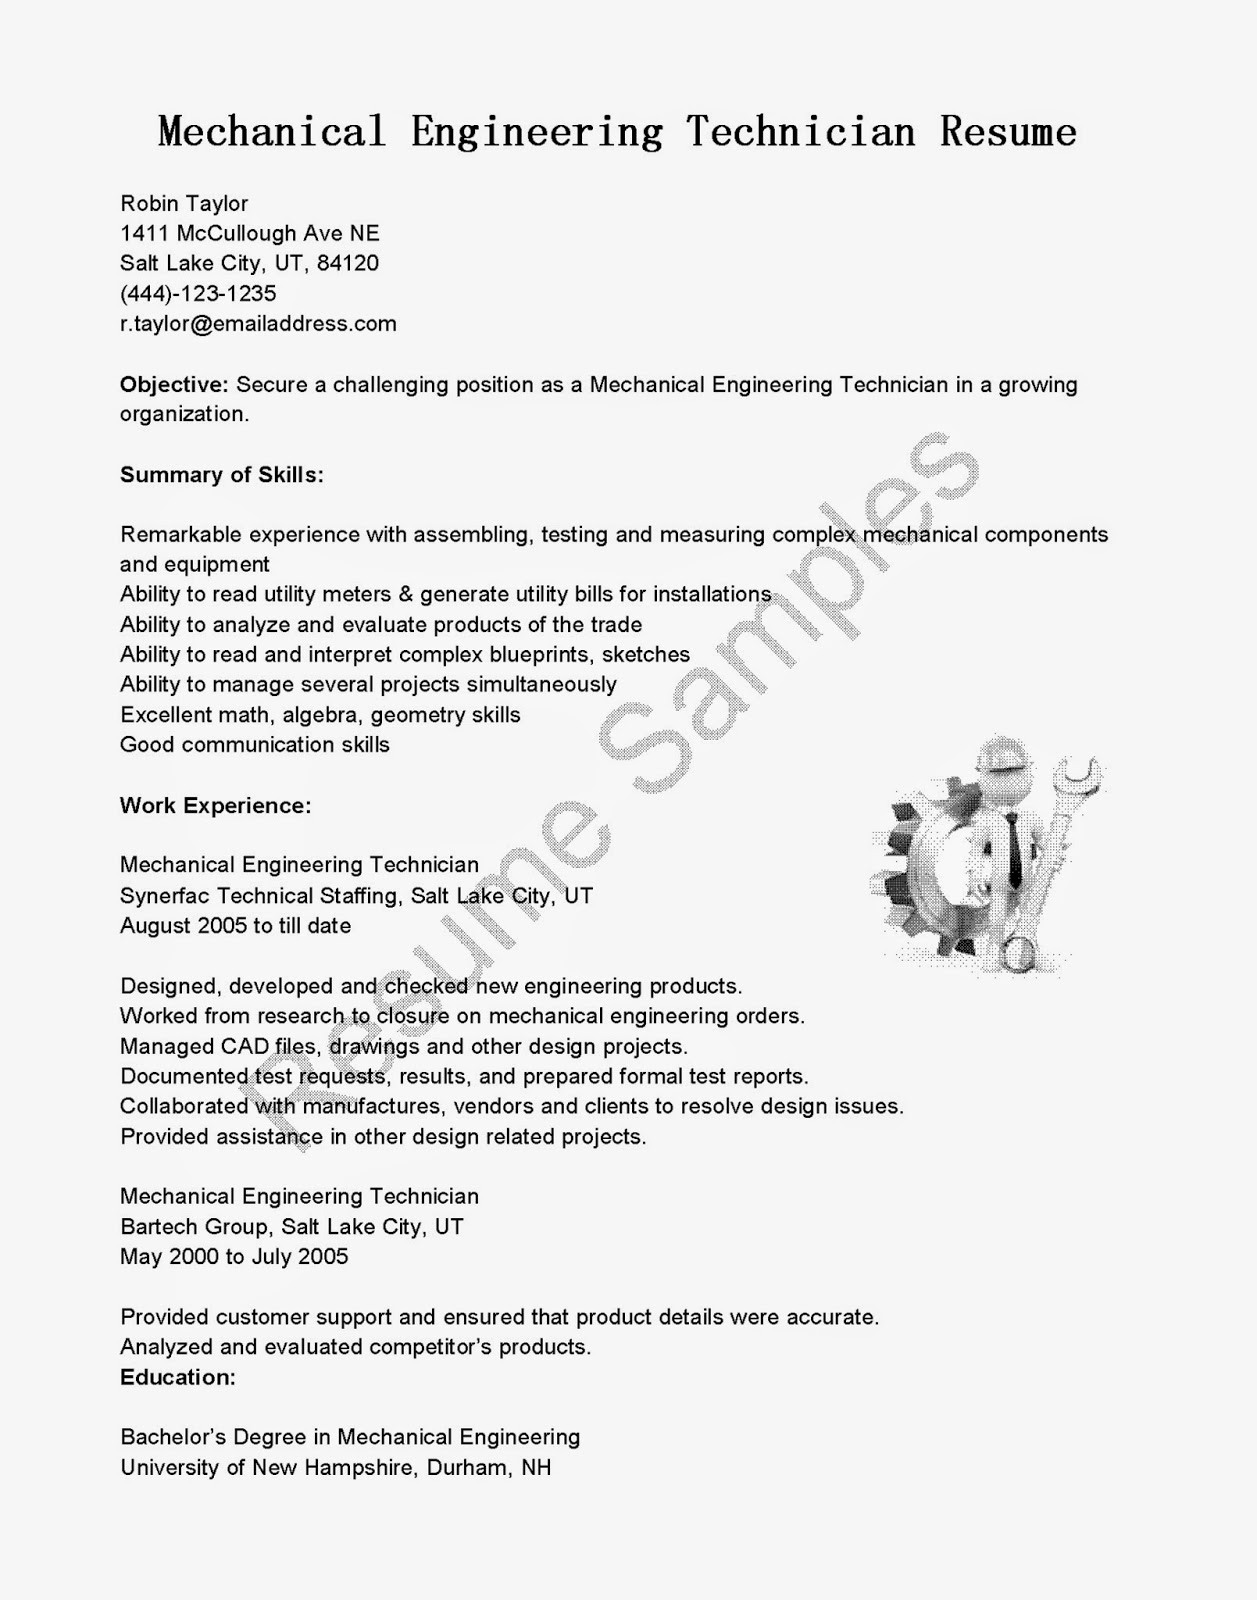 How To Write A Media Analysis Essay Essay Communication Skills Engineers     Essay Communication  Skills Engineers Dna Replication Essay also Dream Children Essayist Essay About Communication Skills Essay About Communication Skills  The Stolen Generation Essay